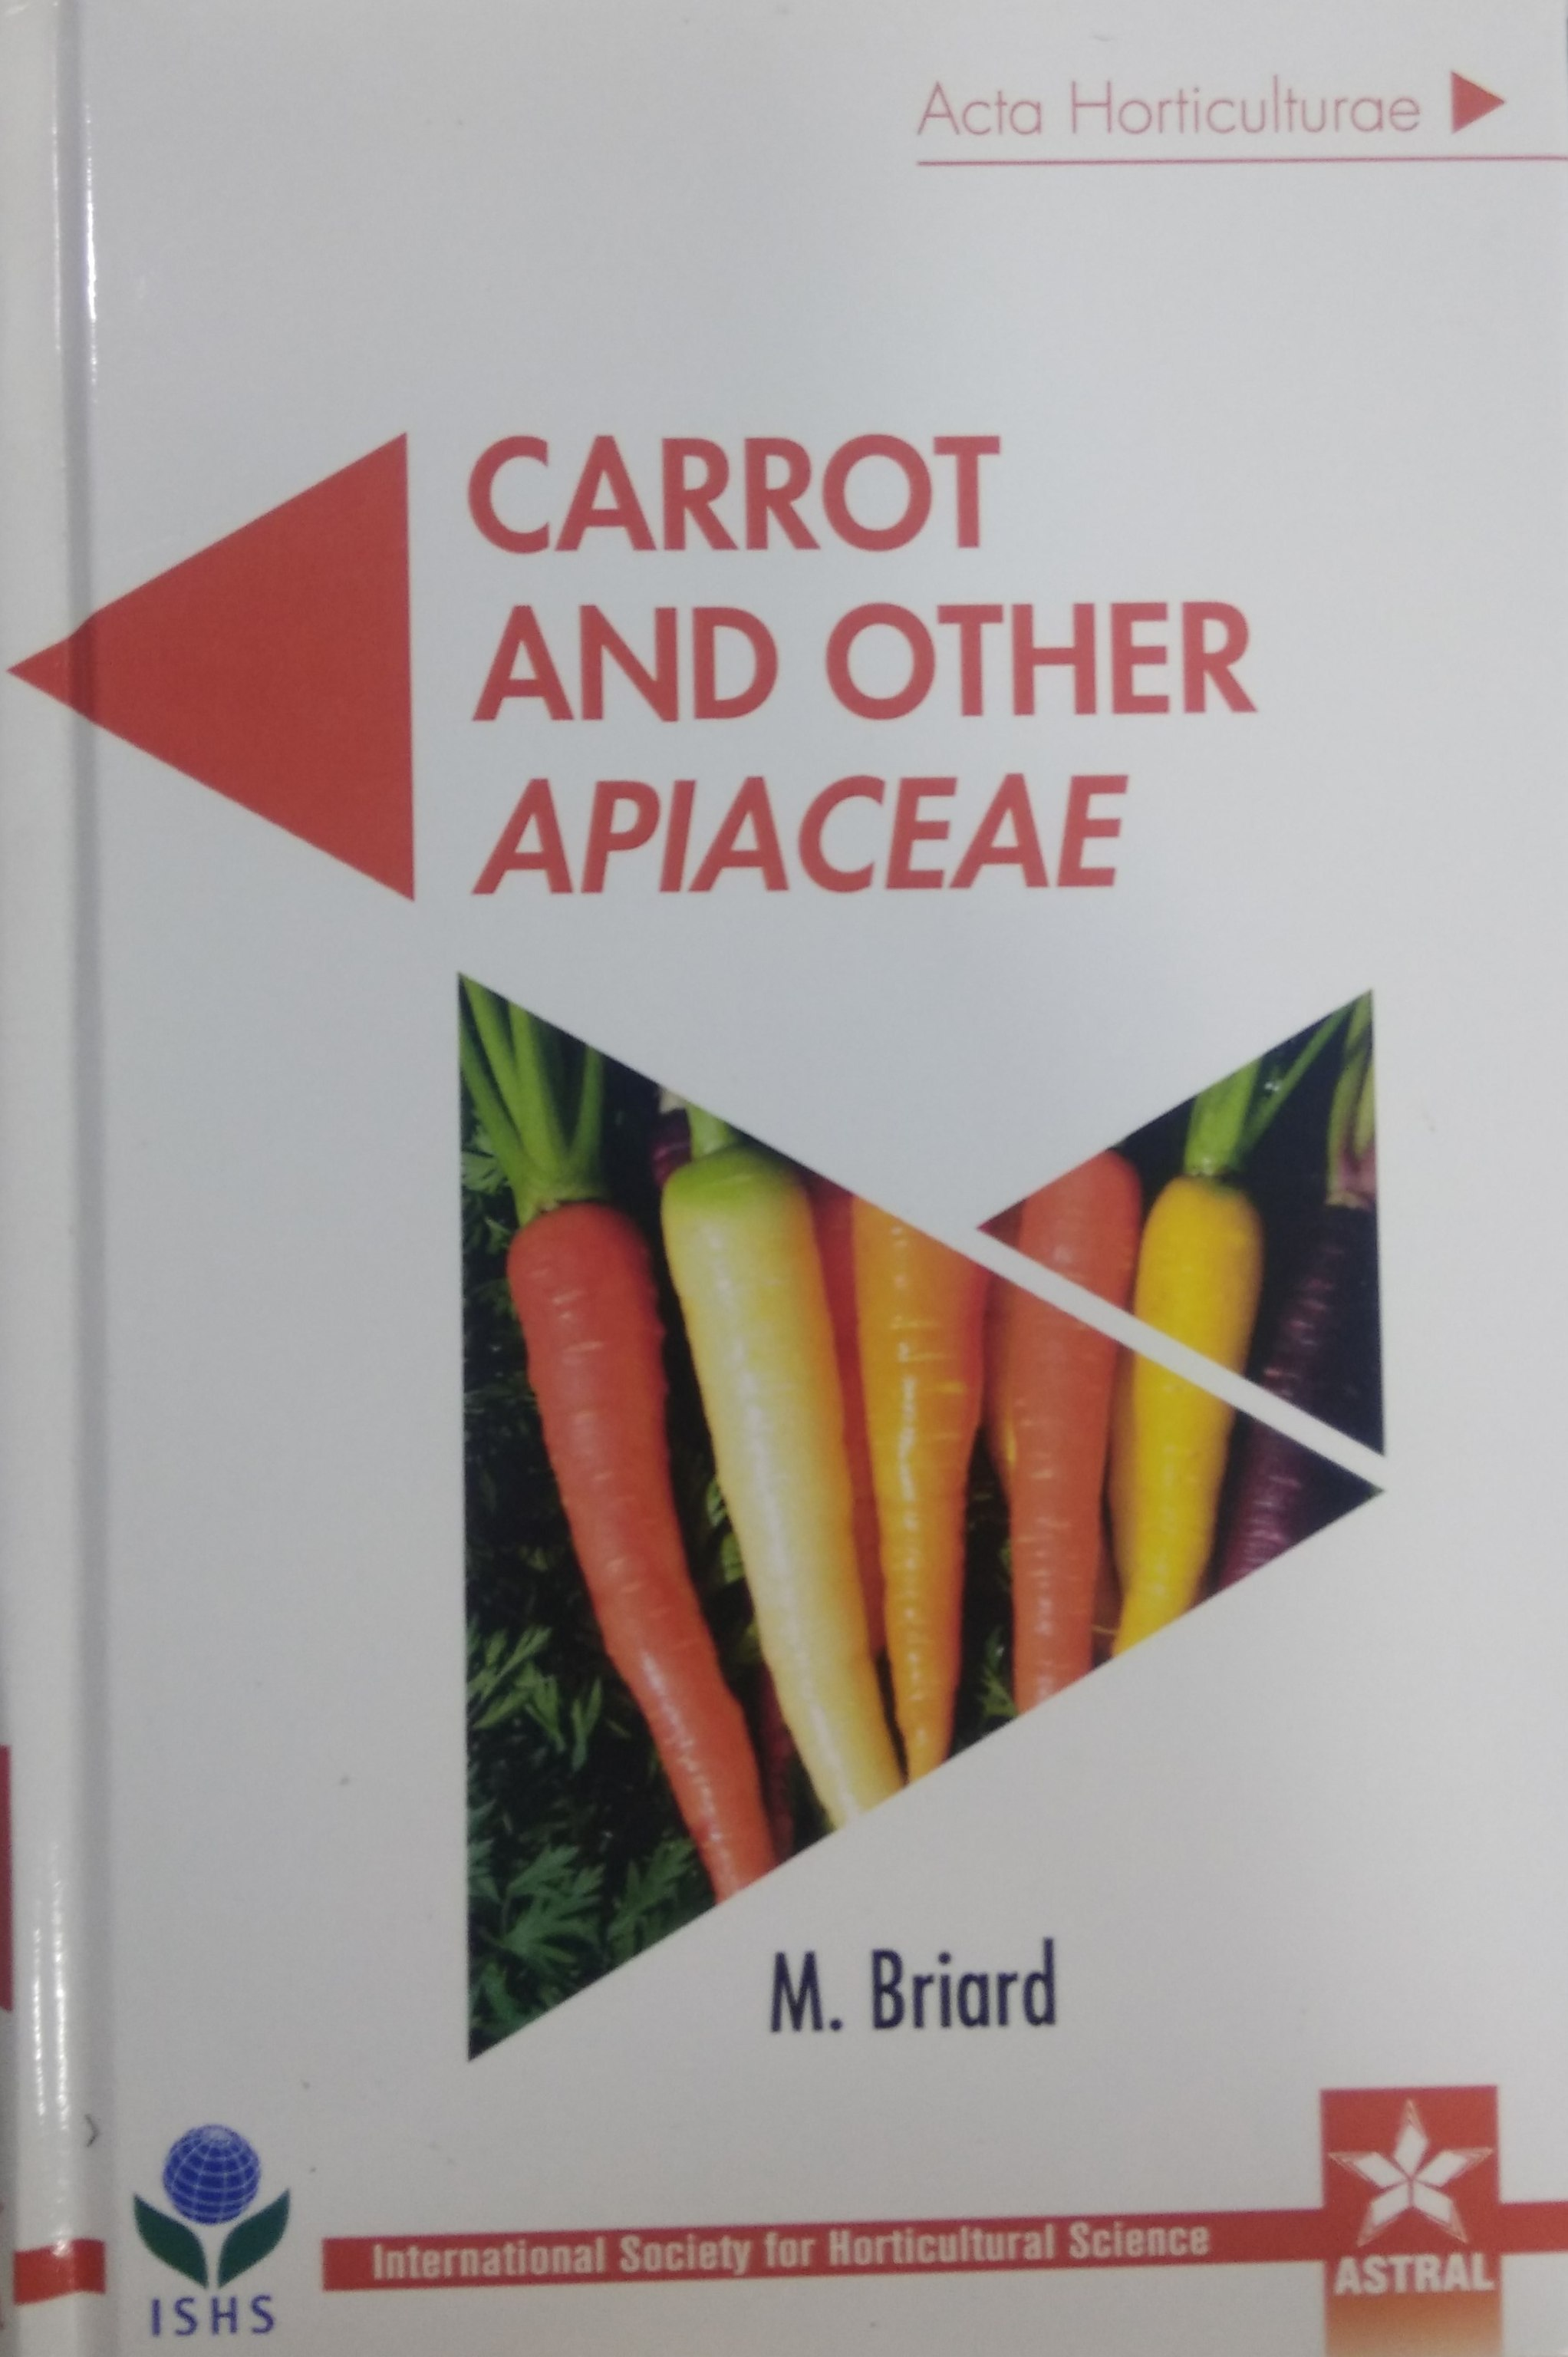 Carrot and Other Apiaceae (Acta Horticulturae 1153…